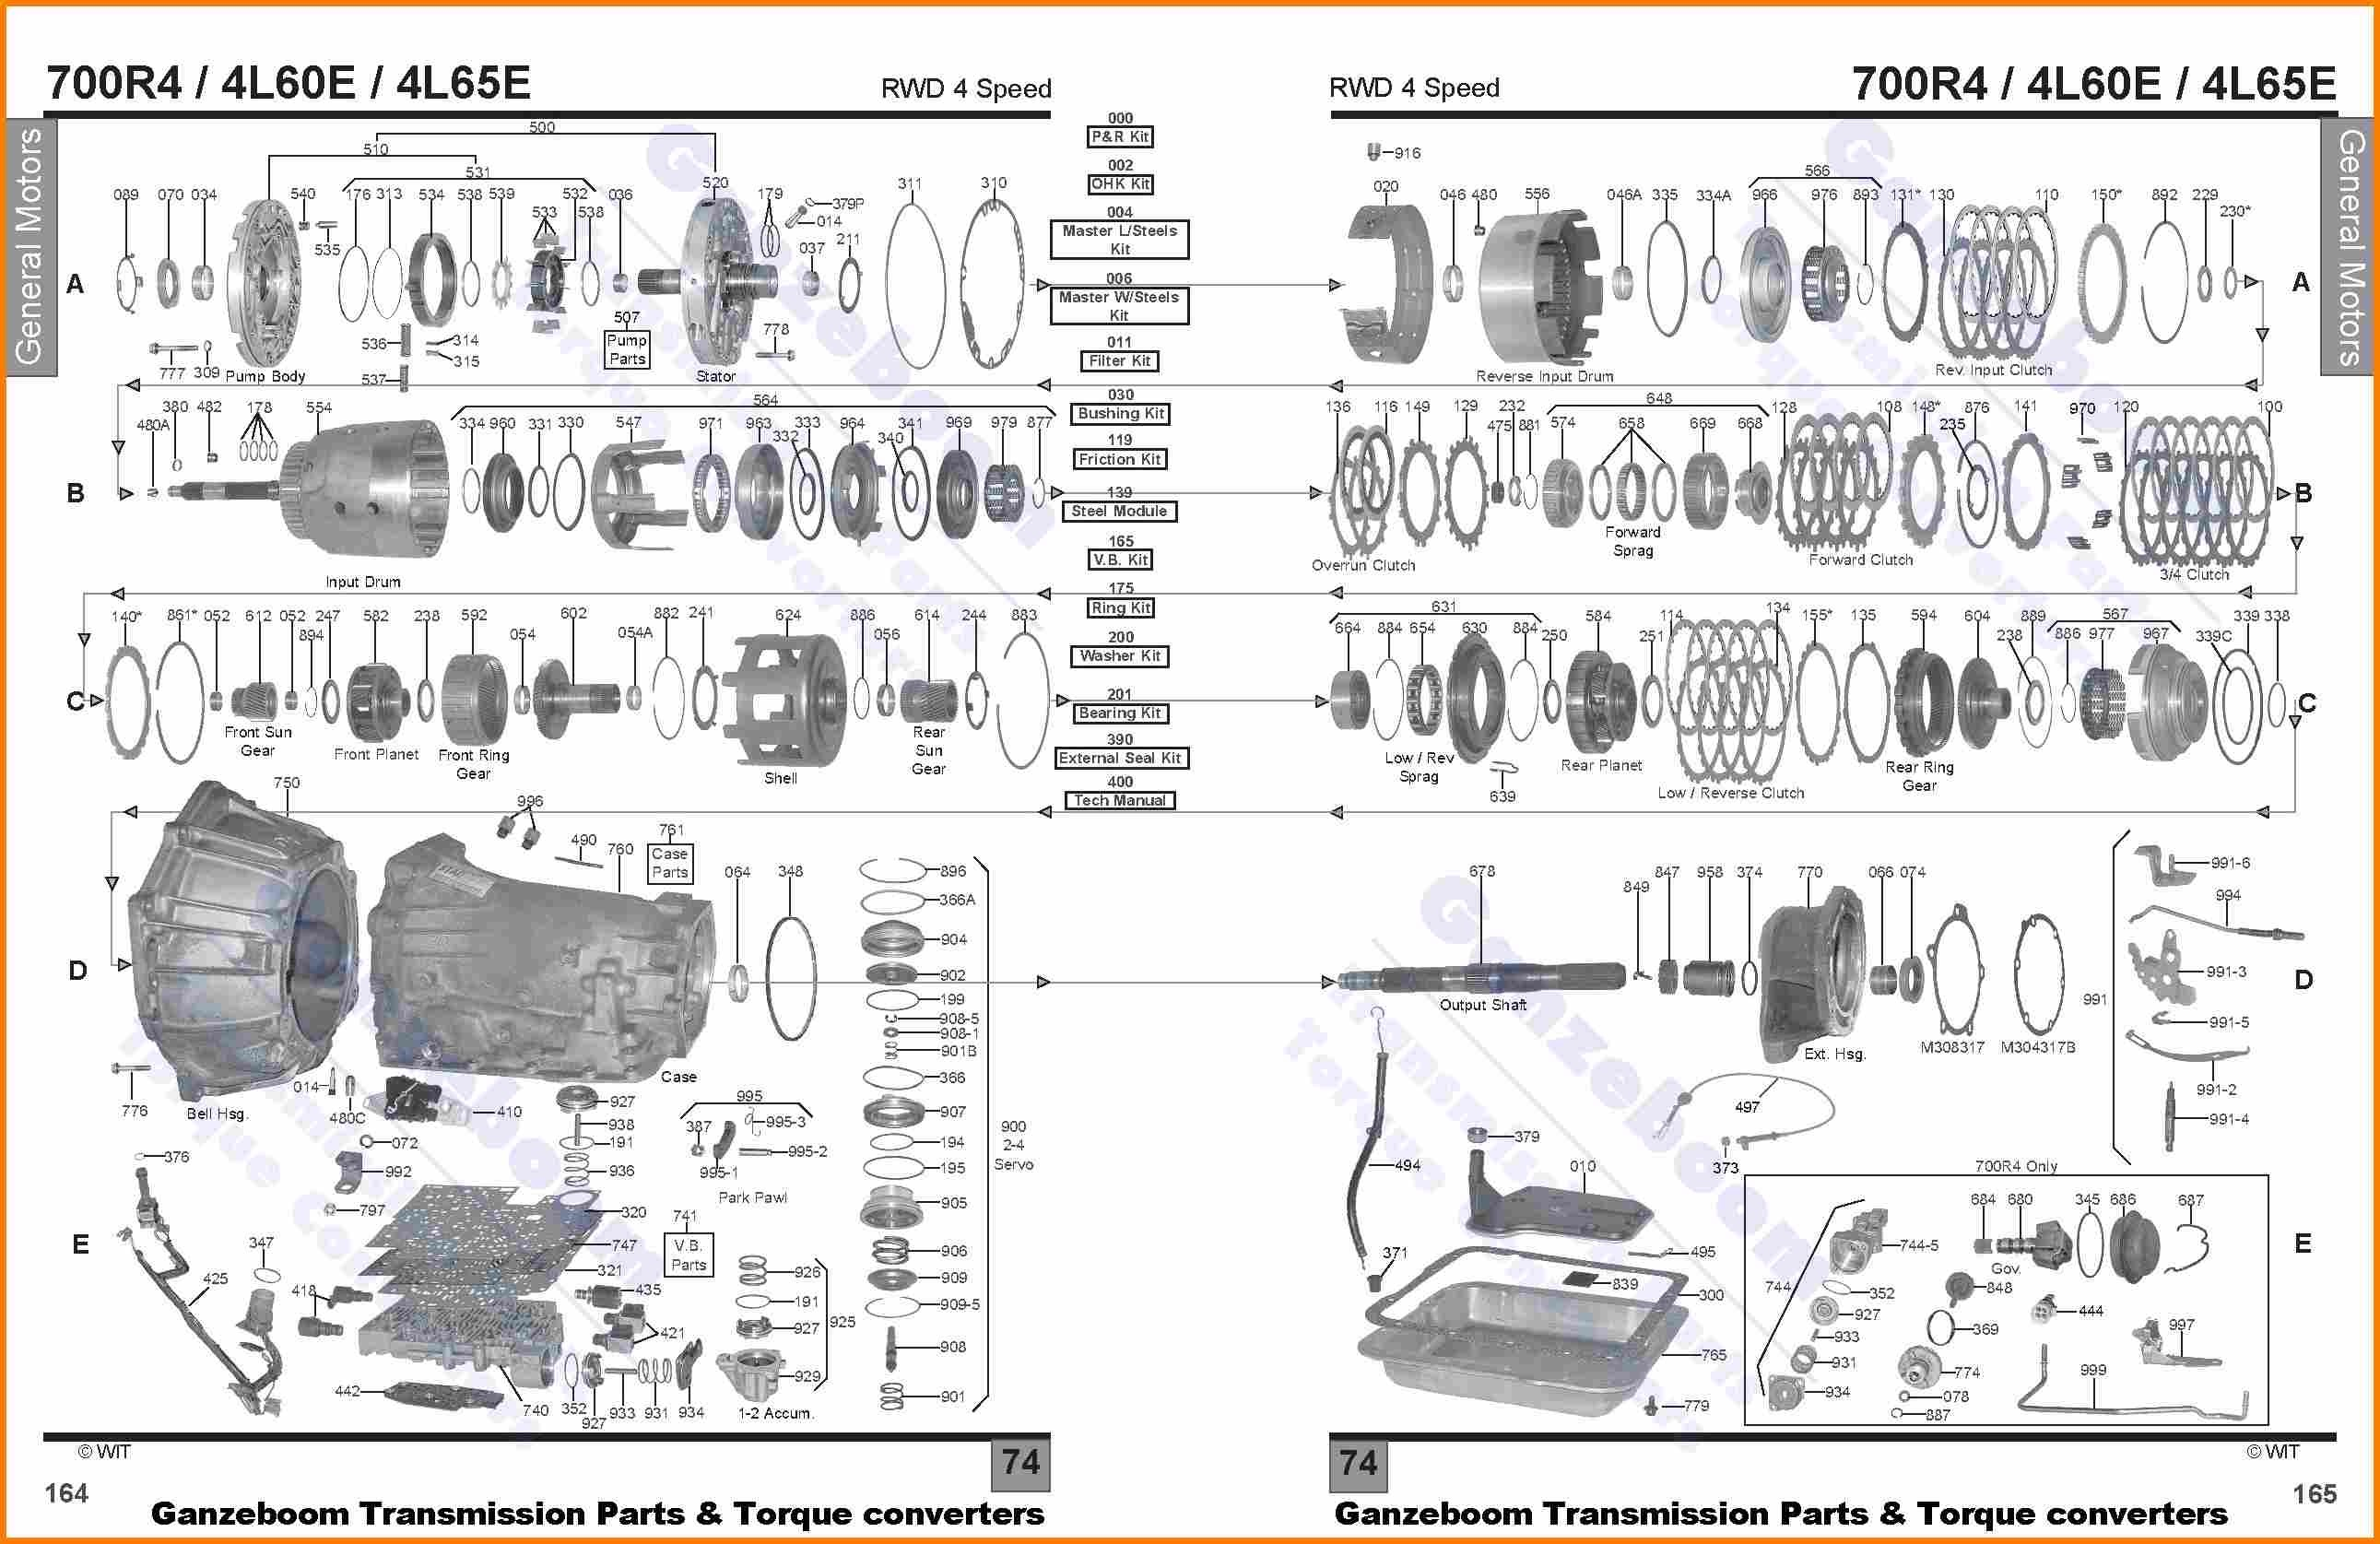 4l60e Transmission Parts Diagram Stunning 4l60e Wiring Diagram S Everything You Need to Know Of 4l60e Transmission Parts Diagram